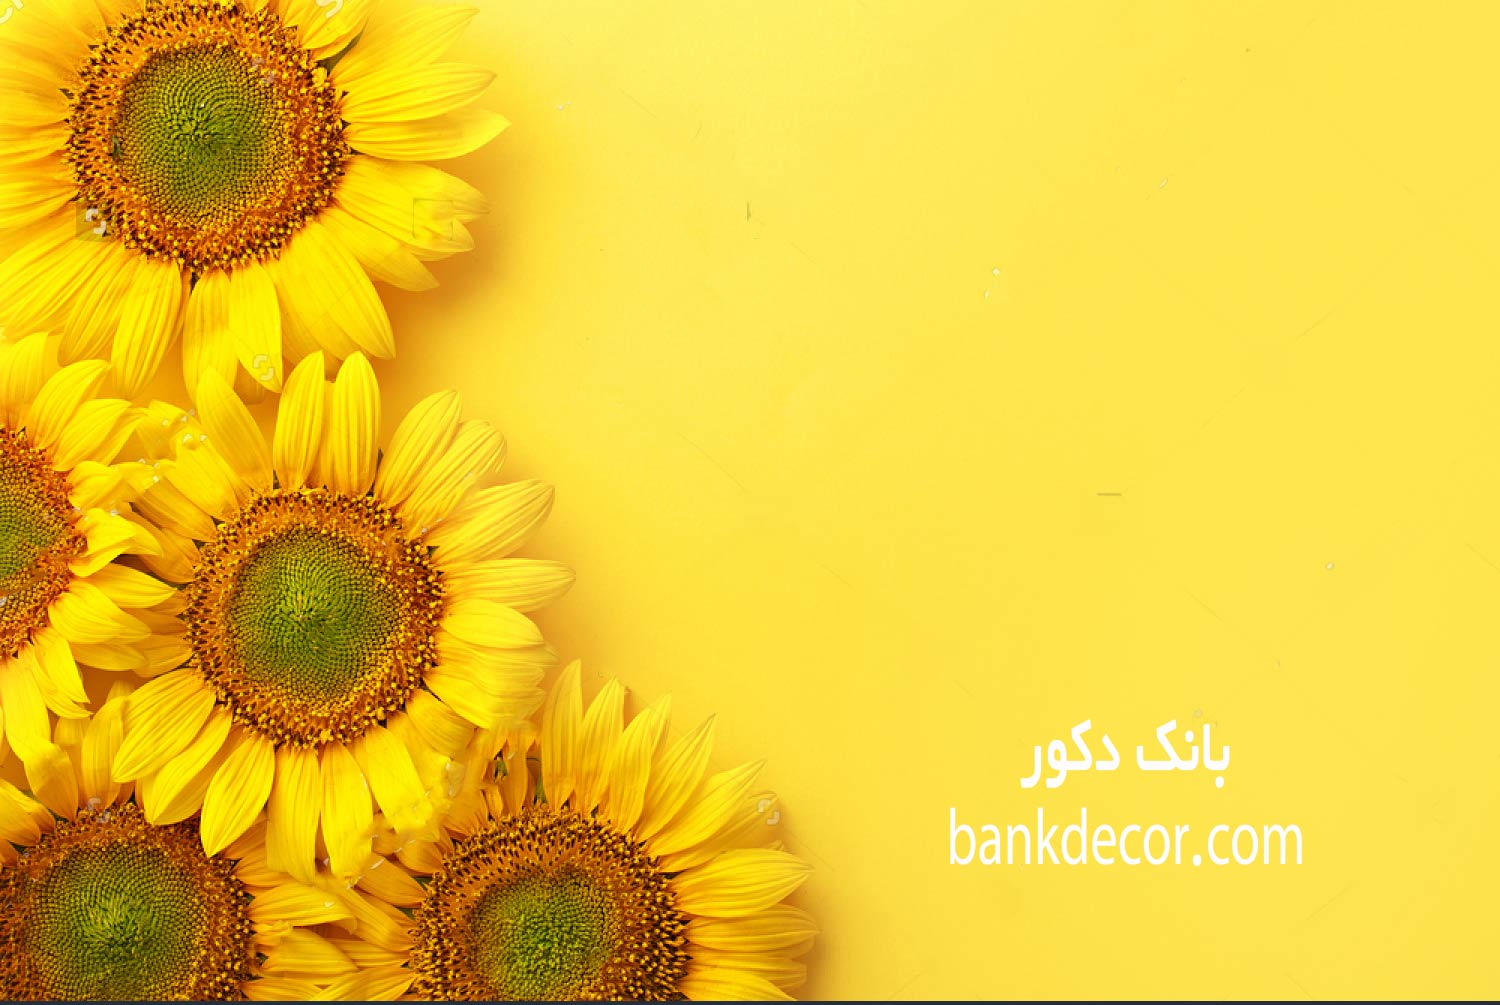 stock-photo-sunflowers-on-a-yellow-background-copy-space-top-view-693773890.jpg